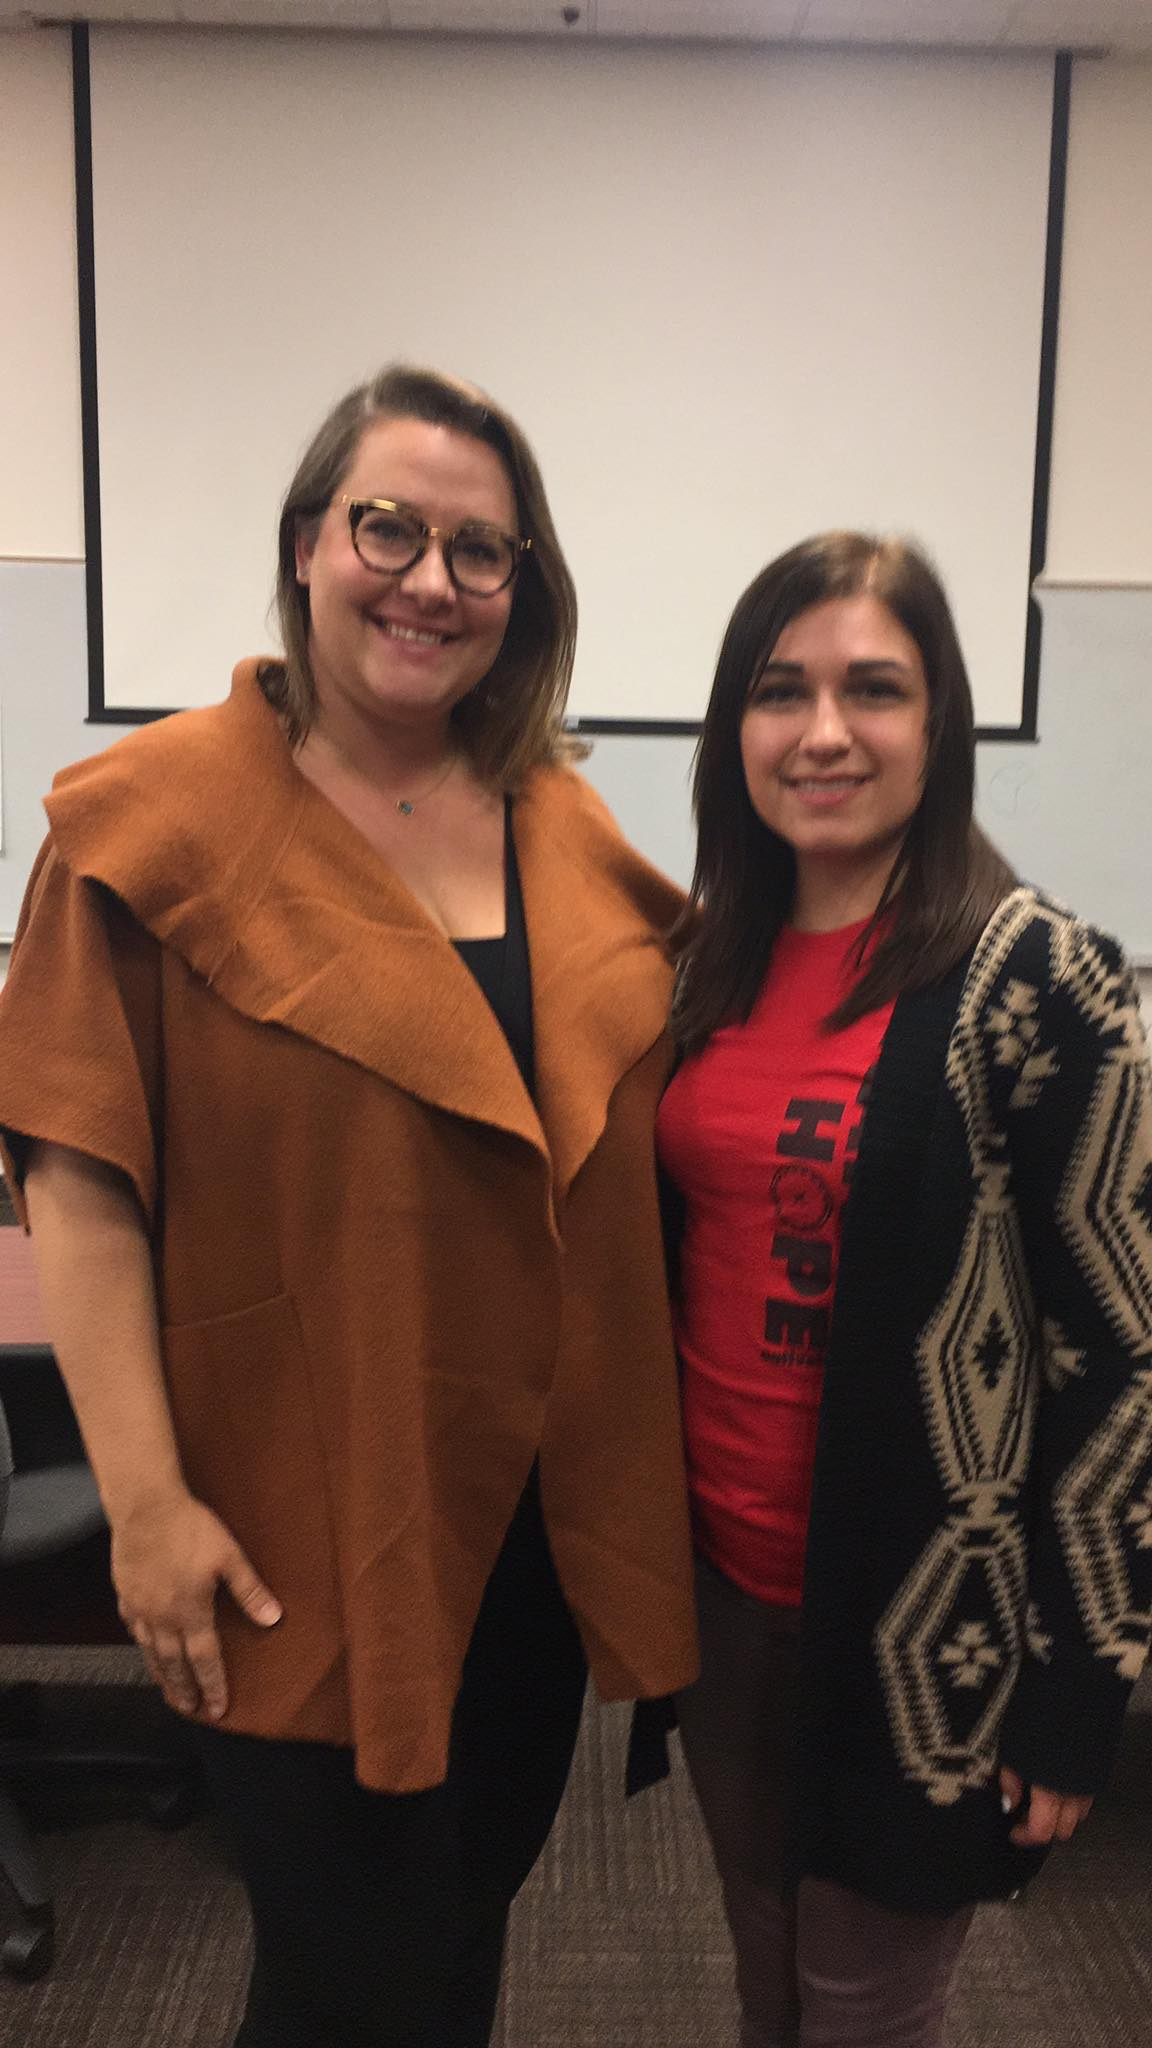 Alexis at Task Force with Christina Sambor (Youth Works for the North Dakota Human Trafficking Task Force)